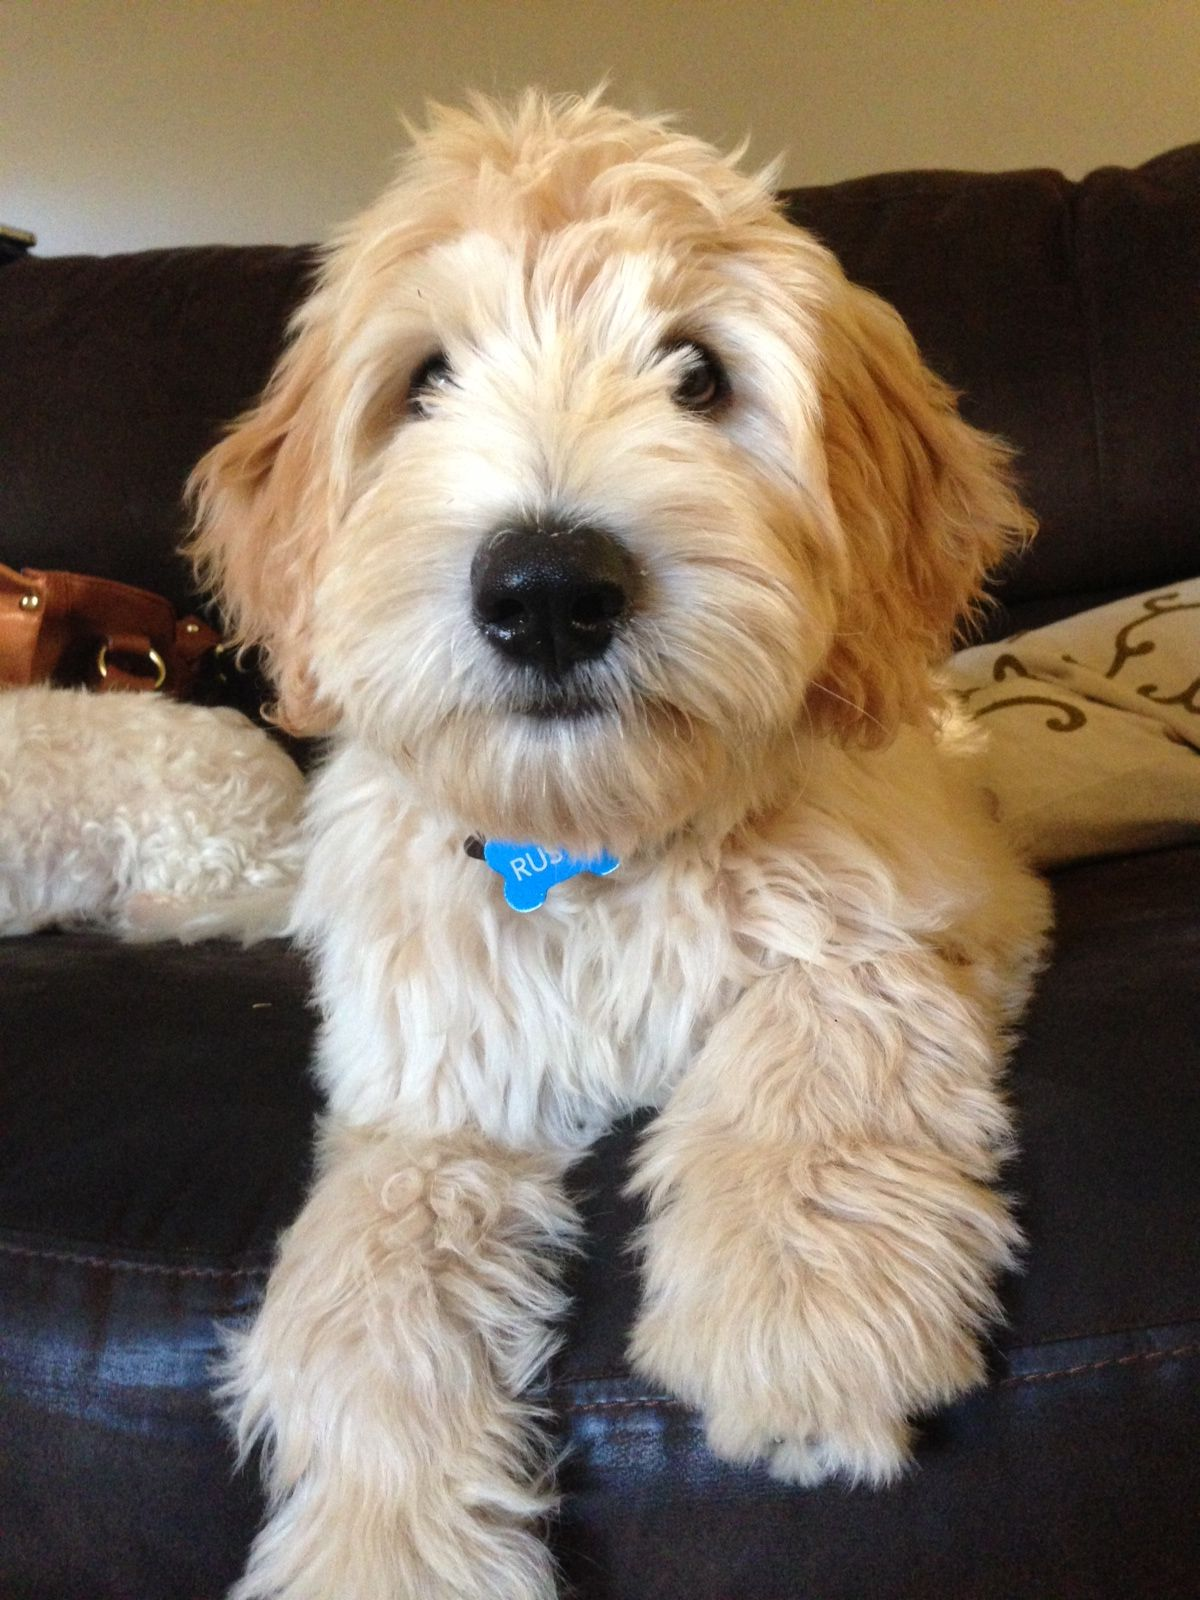 My Labradoodle Rusty Cute Dogs Baby Puppies Doodle Dog